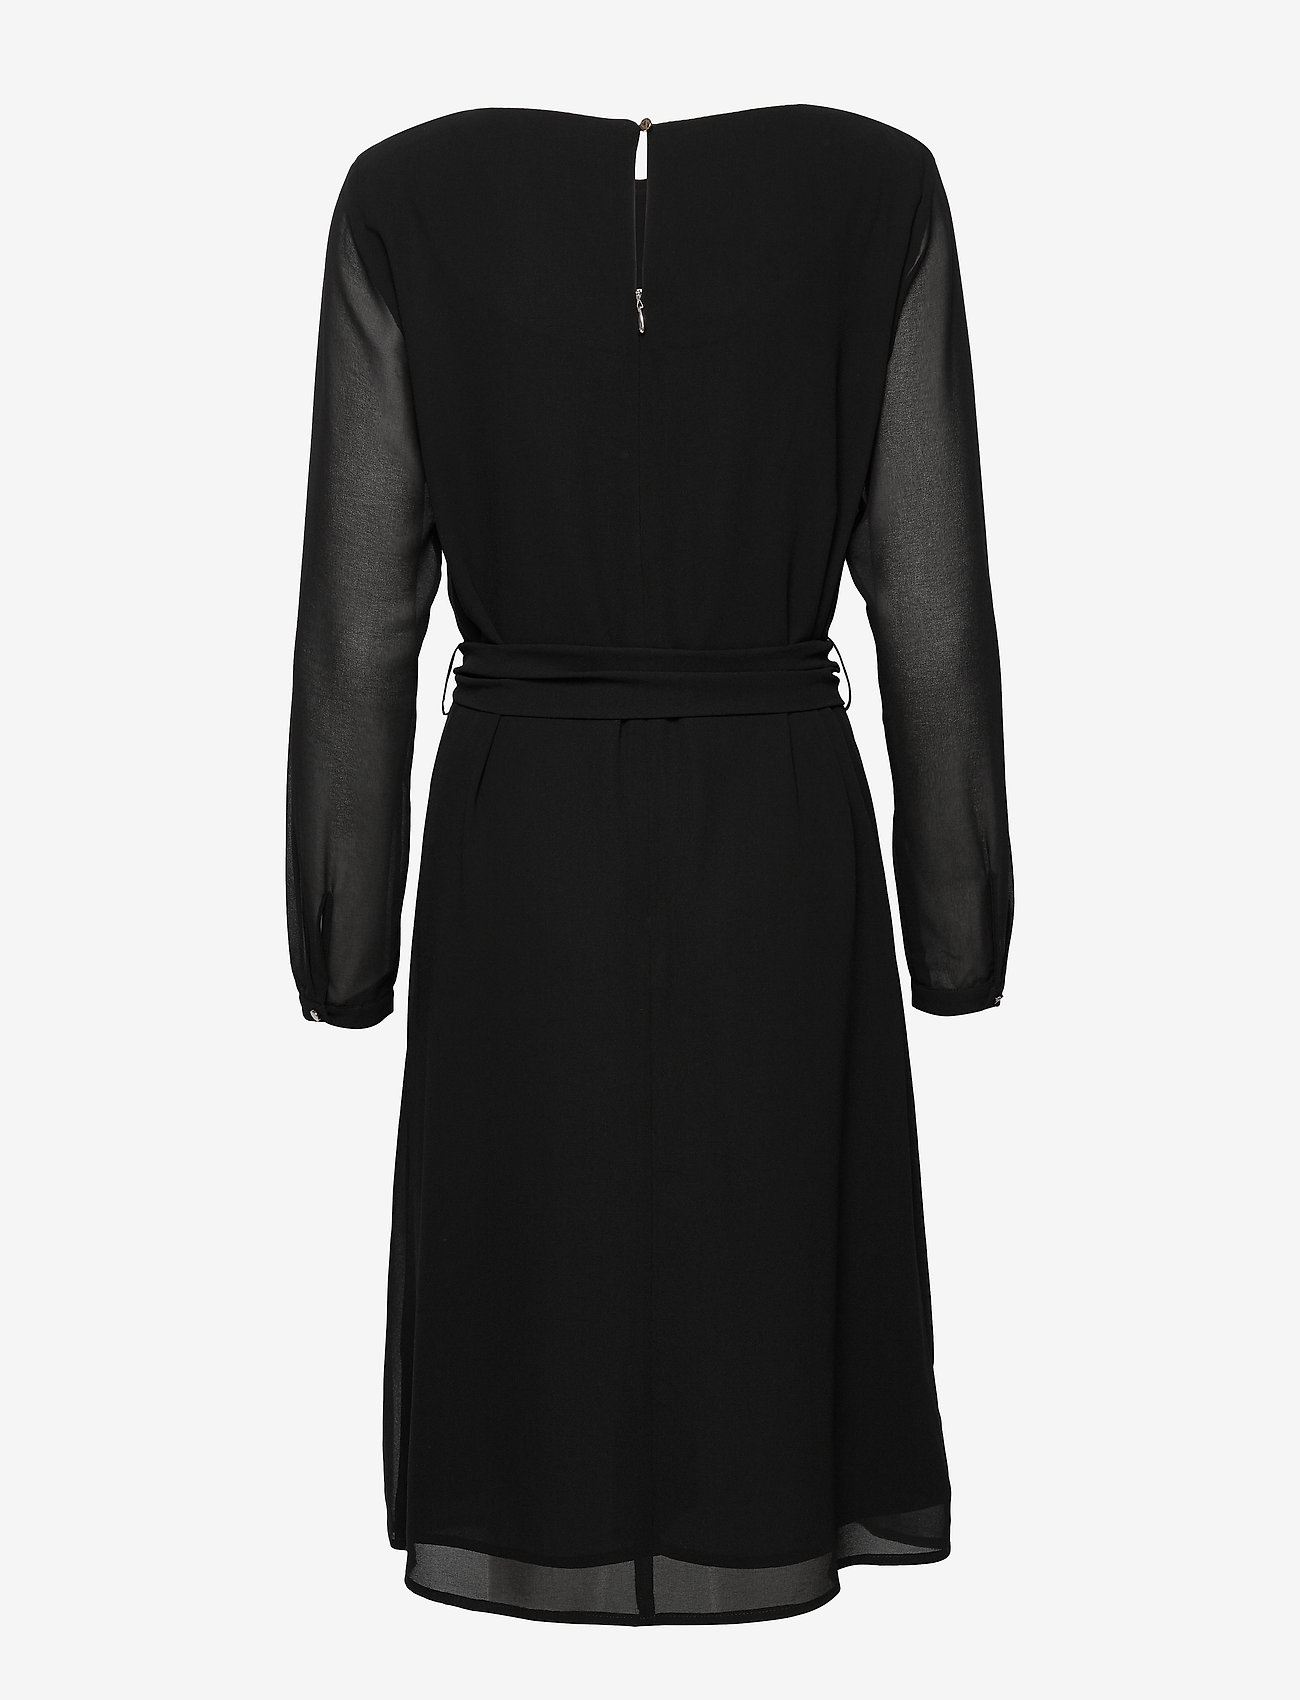 Dresses Light Woven (Black) (500 kr) - Esprit Collection